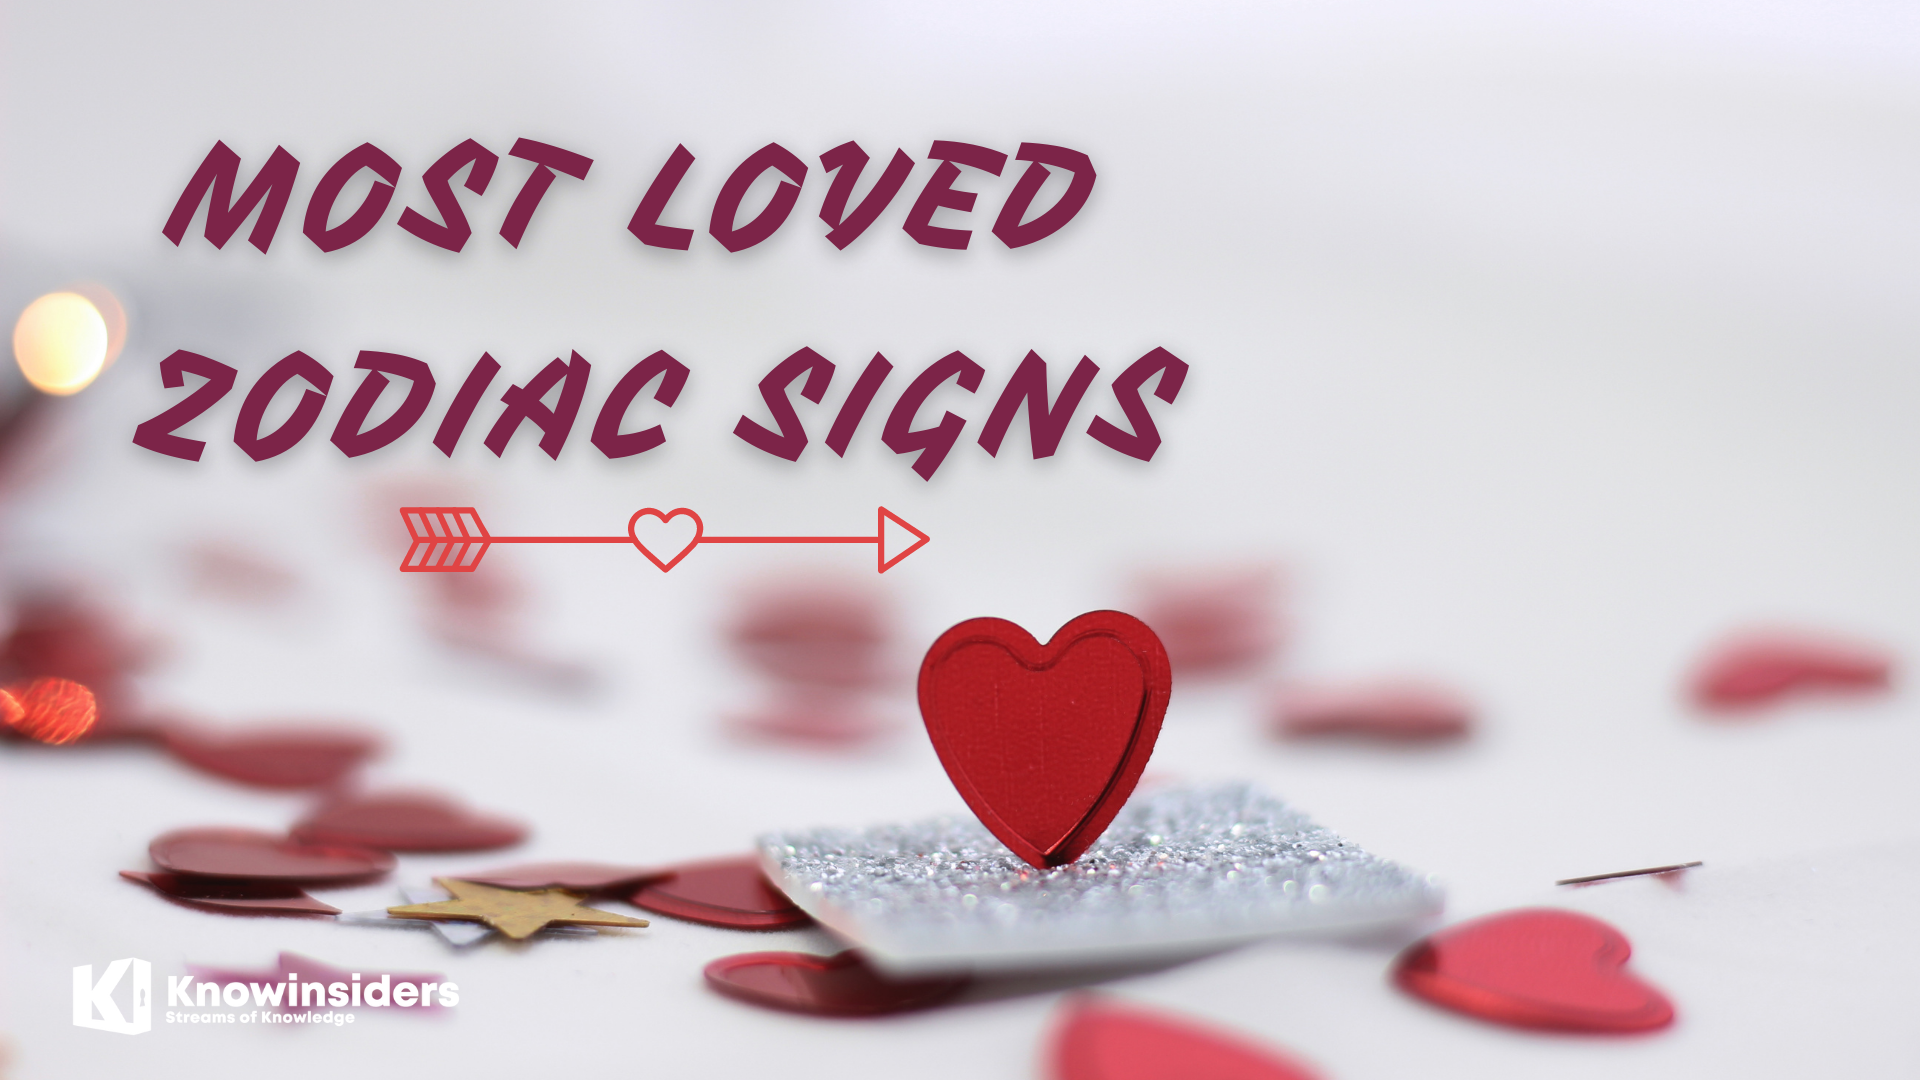 Top 5 Most Loved Zodiac Signs According to Astrology